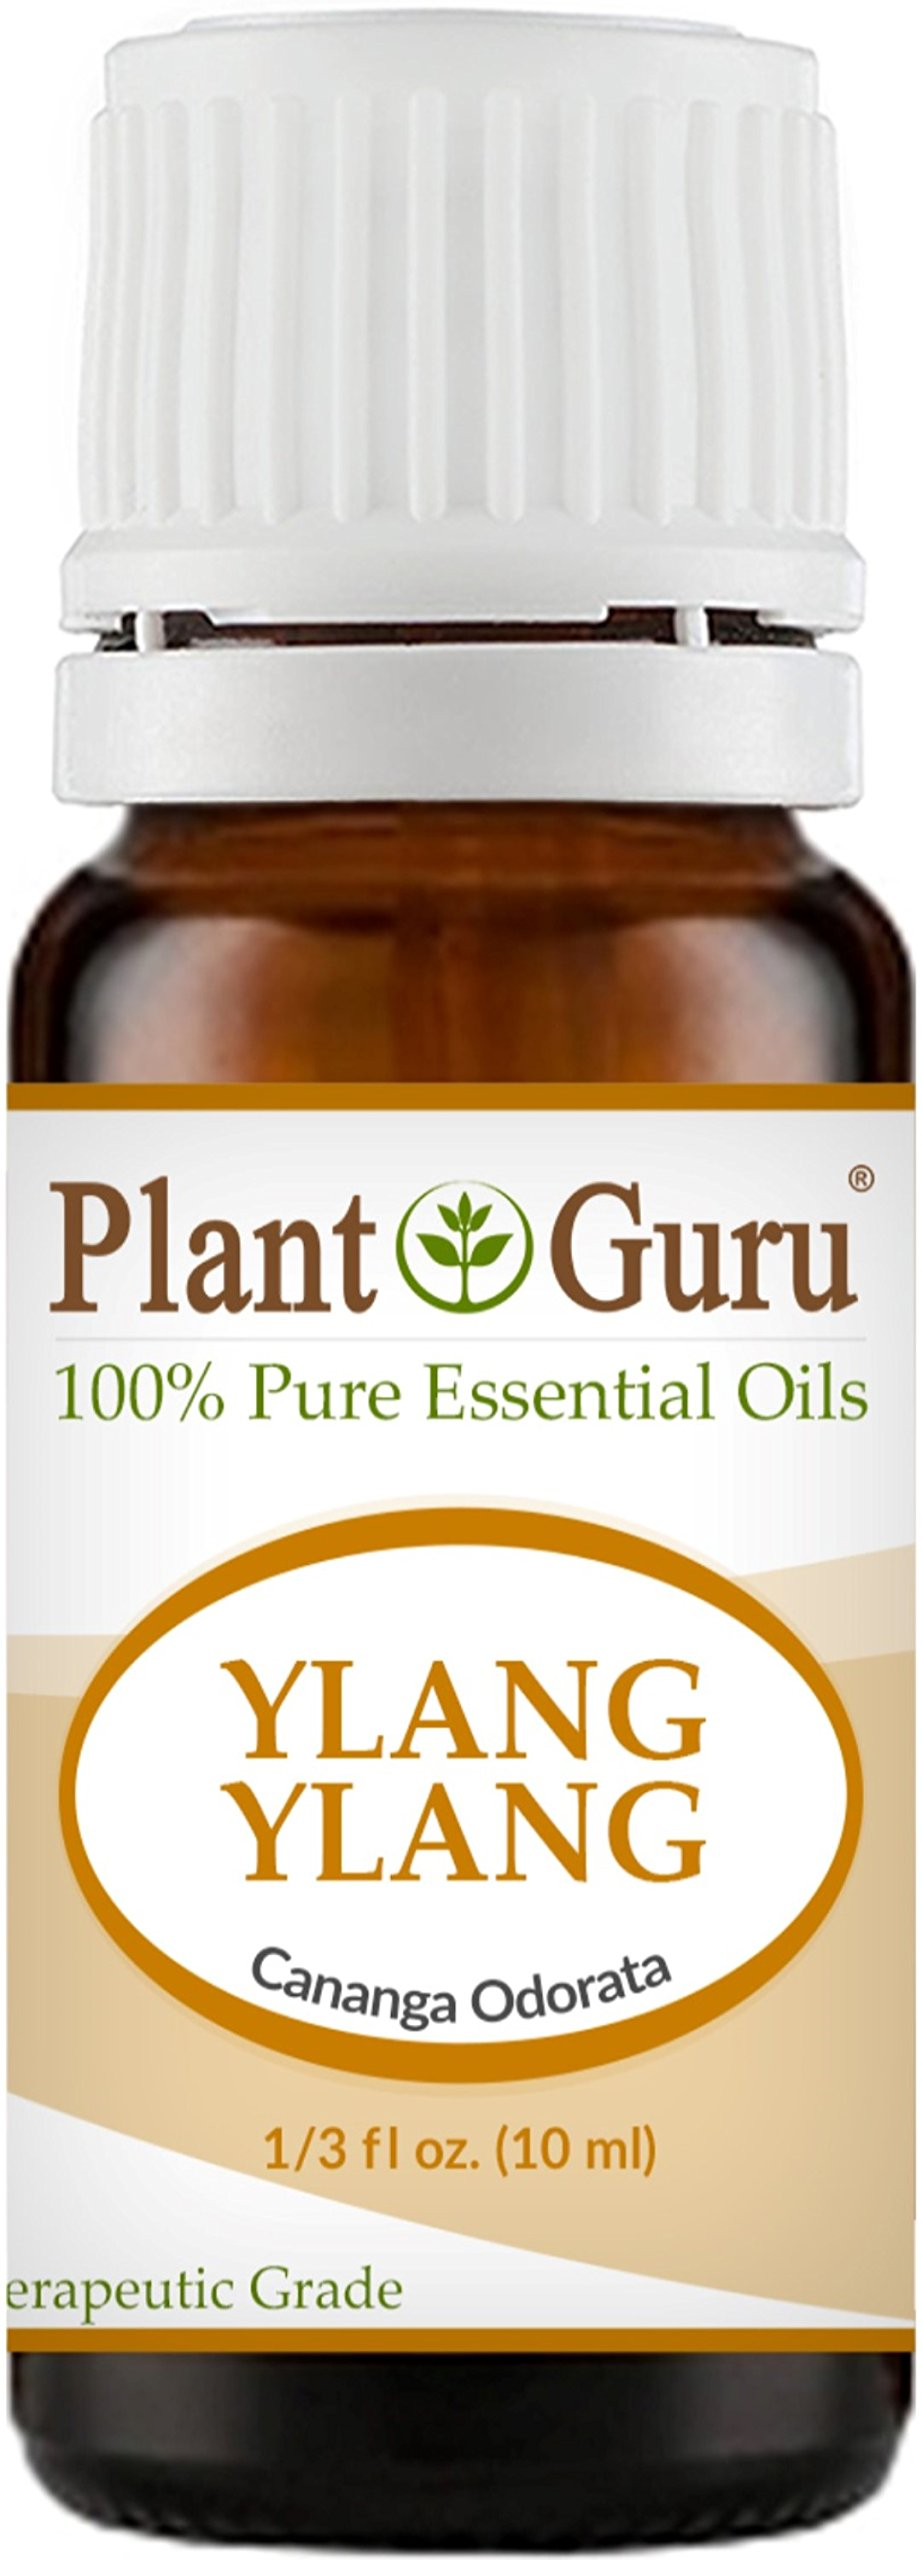 Ylang Ylang Essential Oil 10 ml. 100% Pure Undiluted Therapeutic Grade.